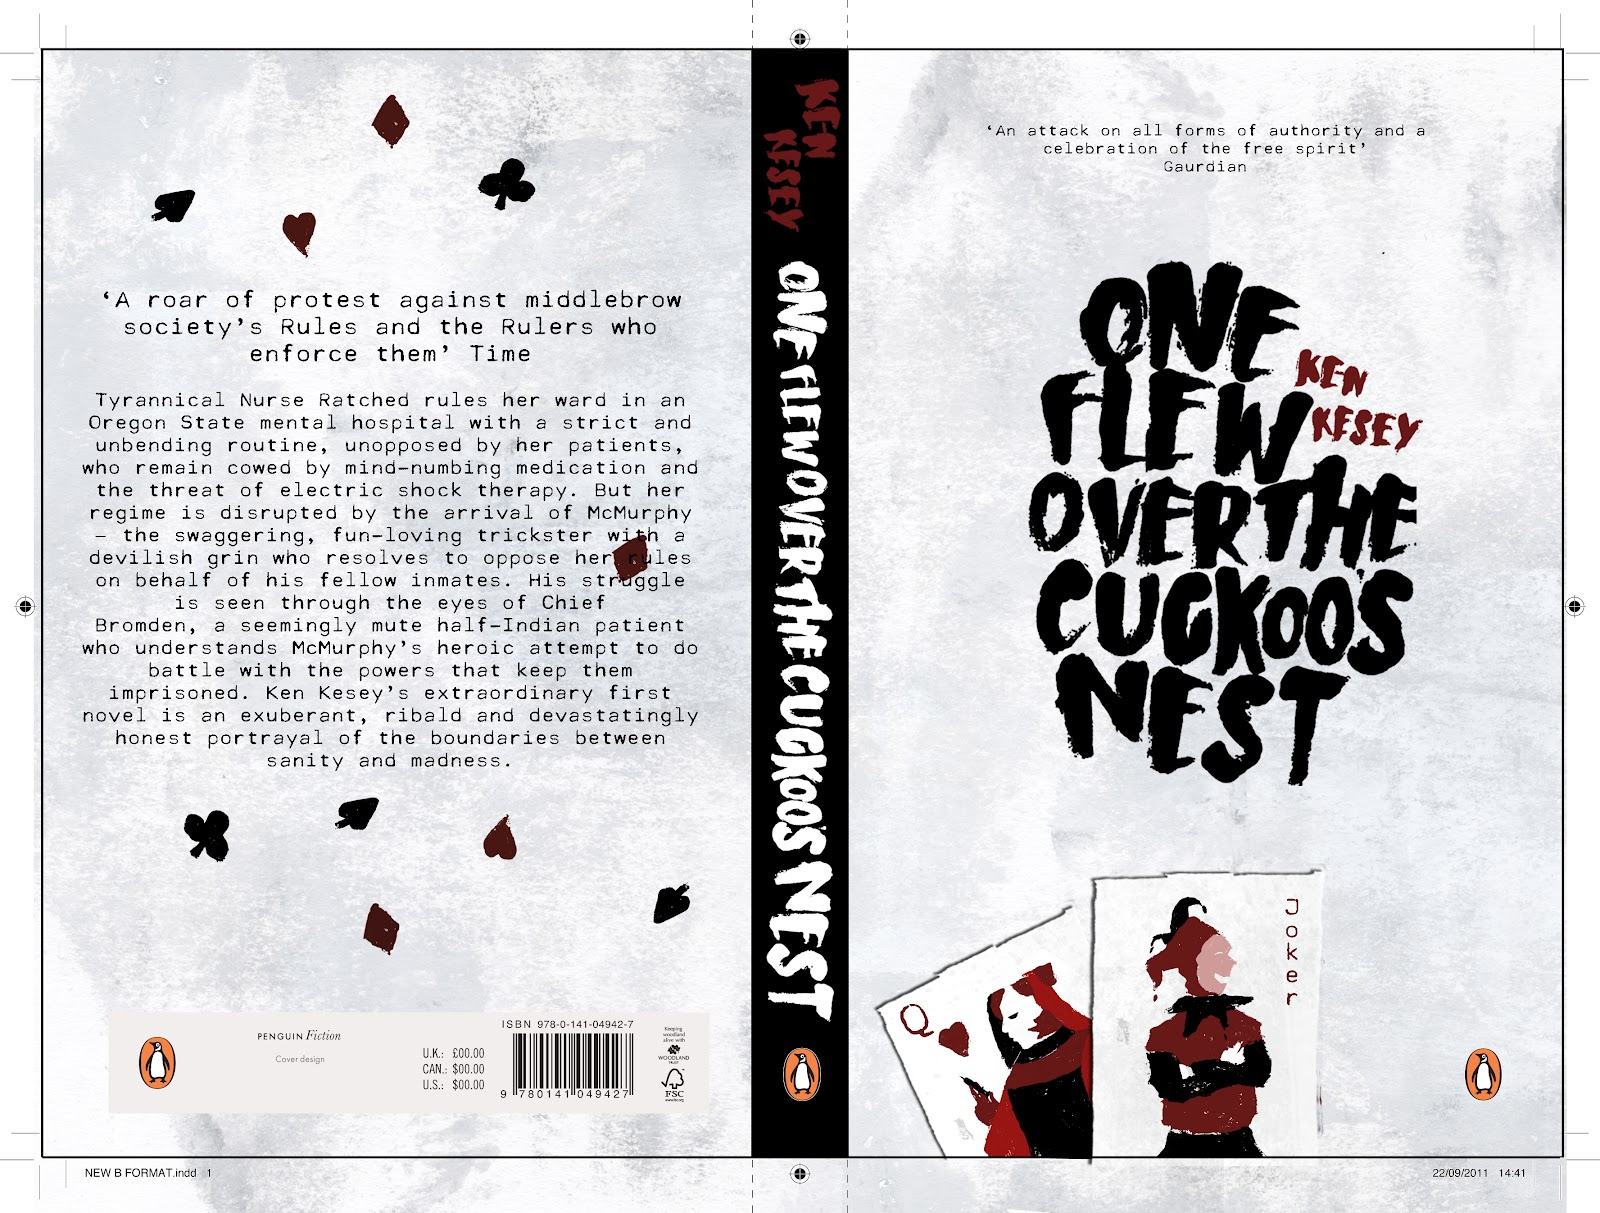 the strong battle between two people in one flew over the cuckoos nest About one flew over the cuckoo's nest prisoner-of-war camp during the korean war mcmurphy is the two presents an interesting contrast between the.